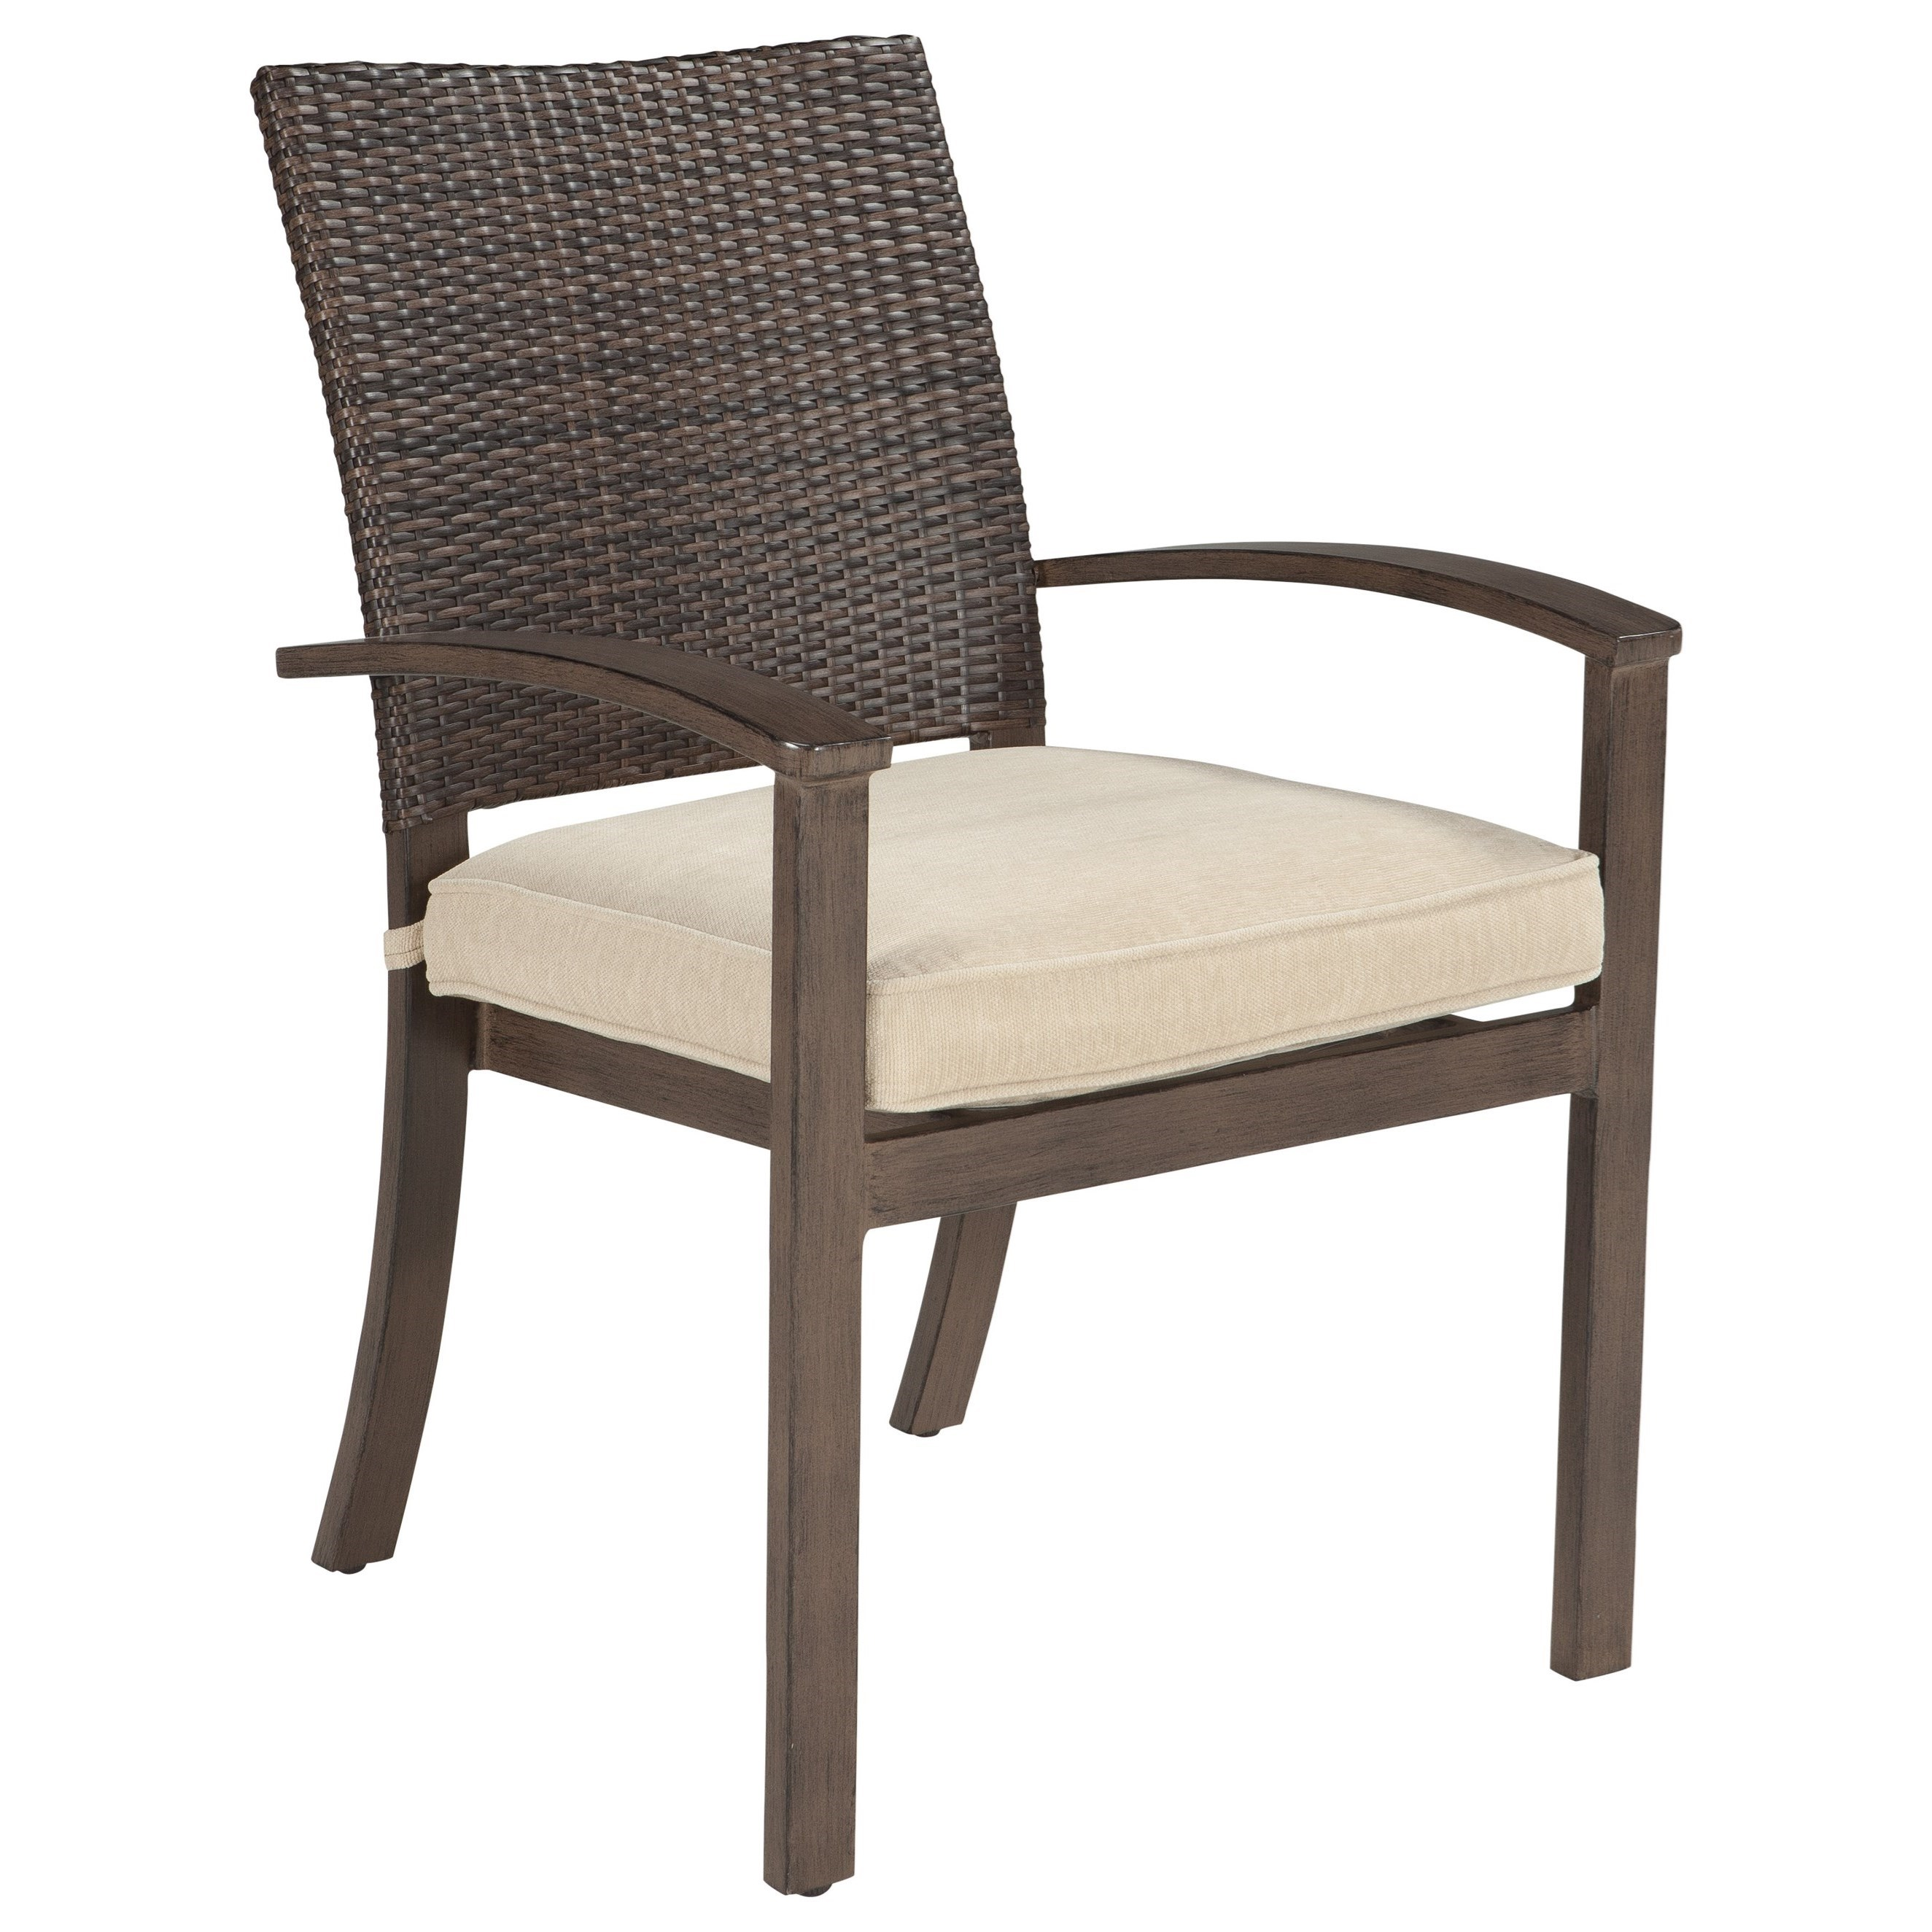 Signature Design by Ashley Moresdale Set of 4 Outdoor Chairs with Cushion - Item Number: P457-601A